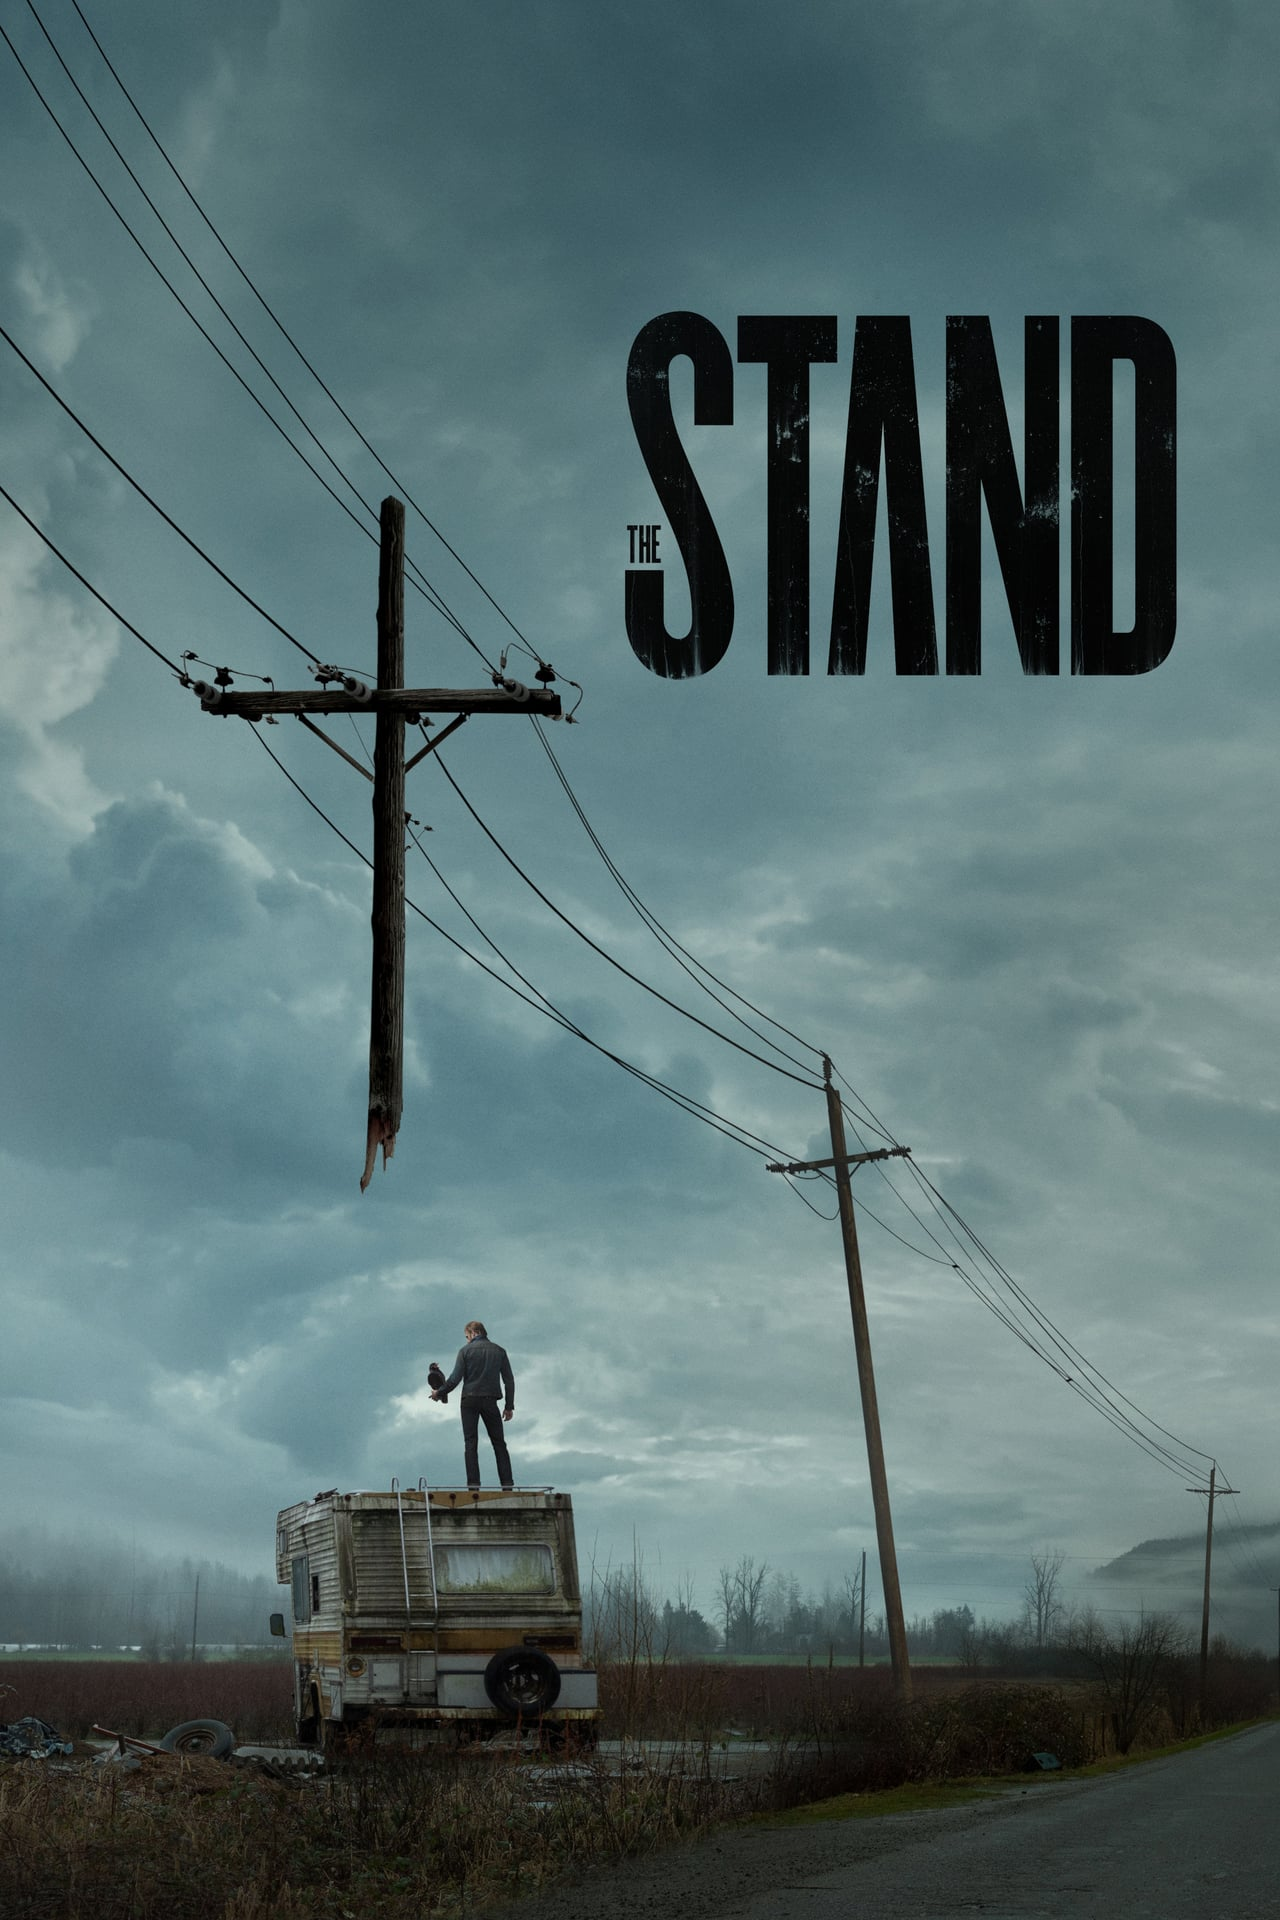 The Stand (season 1)